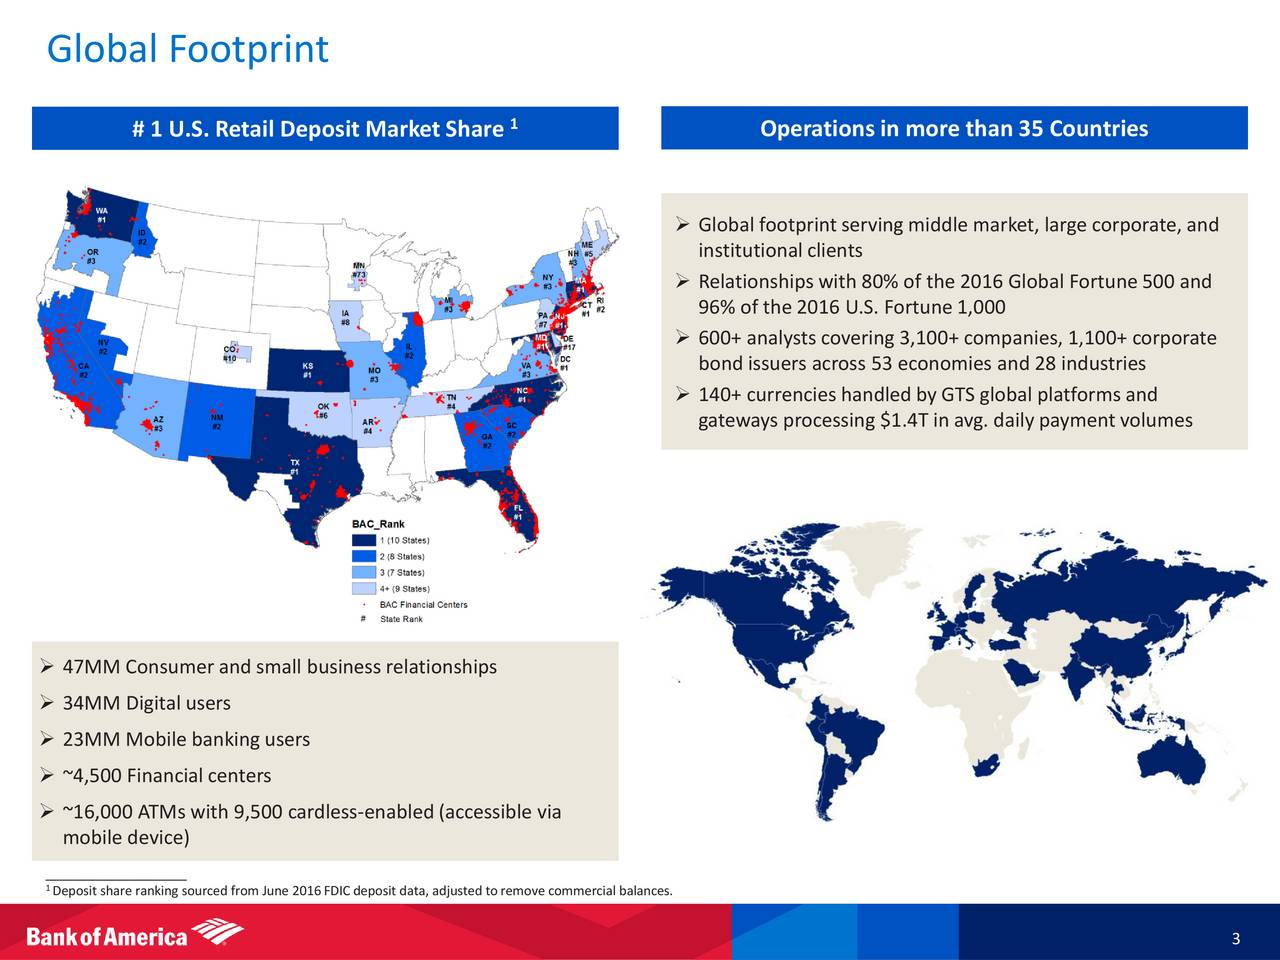 1 # 1 U.S. Retail Deposit Market Share Operationsin more than 35 Countries Global footprintserving middle market, large corporate, and institutionalclients Relationshipswith 80% of the 2016 Global Fortune 500 and 96% of the 2016 U.S. Fortune 1,000 600+ analysts covering 3,100+ companies, 1,100+ corporate bond issuers across 53 economies and 28 industries 140+ currencies handled by GTS global platforms and gateways processing $1.4T in avg. daily payment volumes 47MM Consumer and small business relationships 34MM Digital users 23MM Mobile banking users ~4,500 Financial centers ~16,000 ATMs with 9,500 cardless-enabled(accessible via mobile device) ____________________ 1Deposit share ranking sourced from June 2016FDICdeposit data, adjusted to remove commercial balances. 3